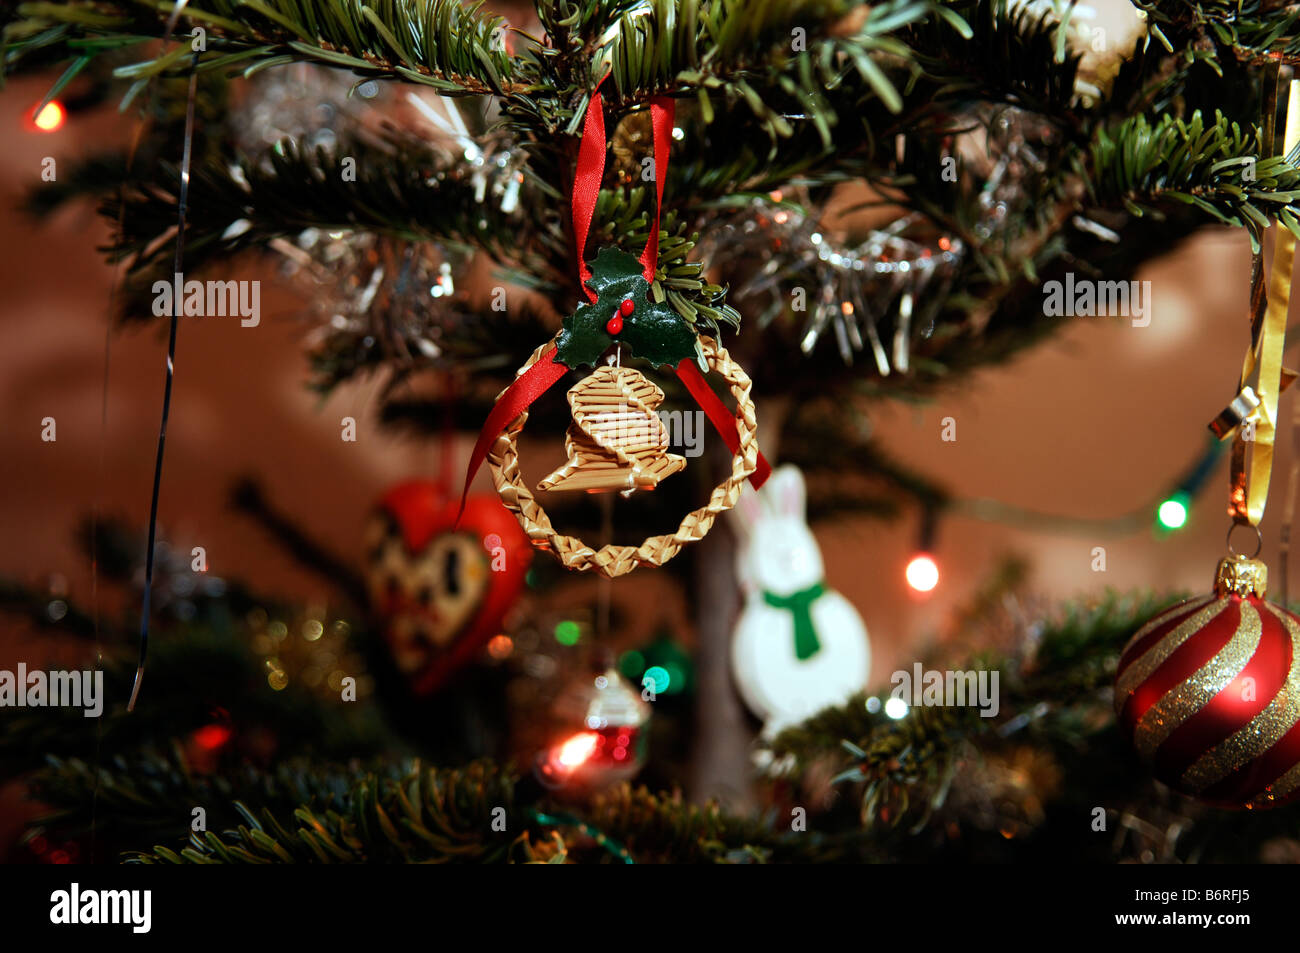 Old Fashioned Christmas Tree Decoration Stock Photos & Old Fashioned ...